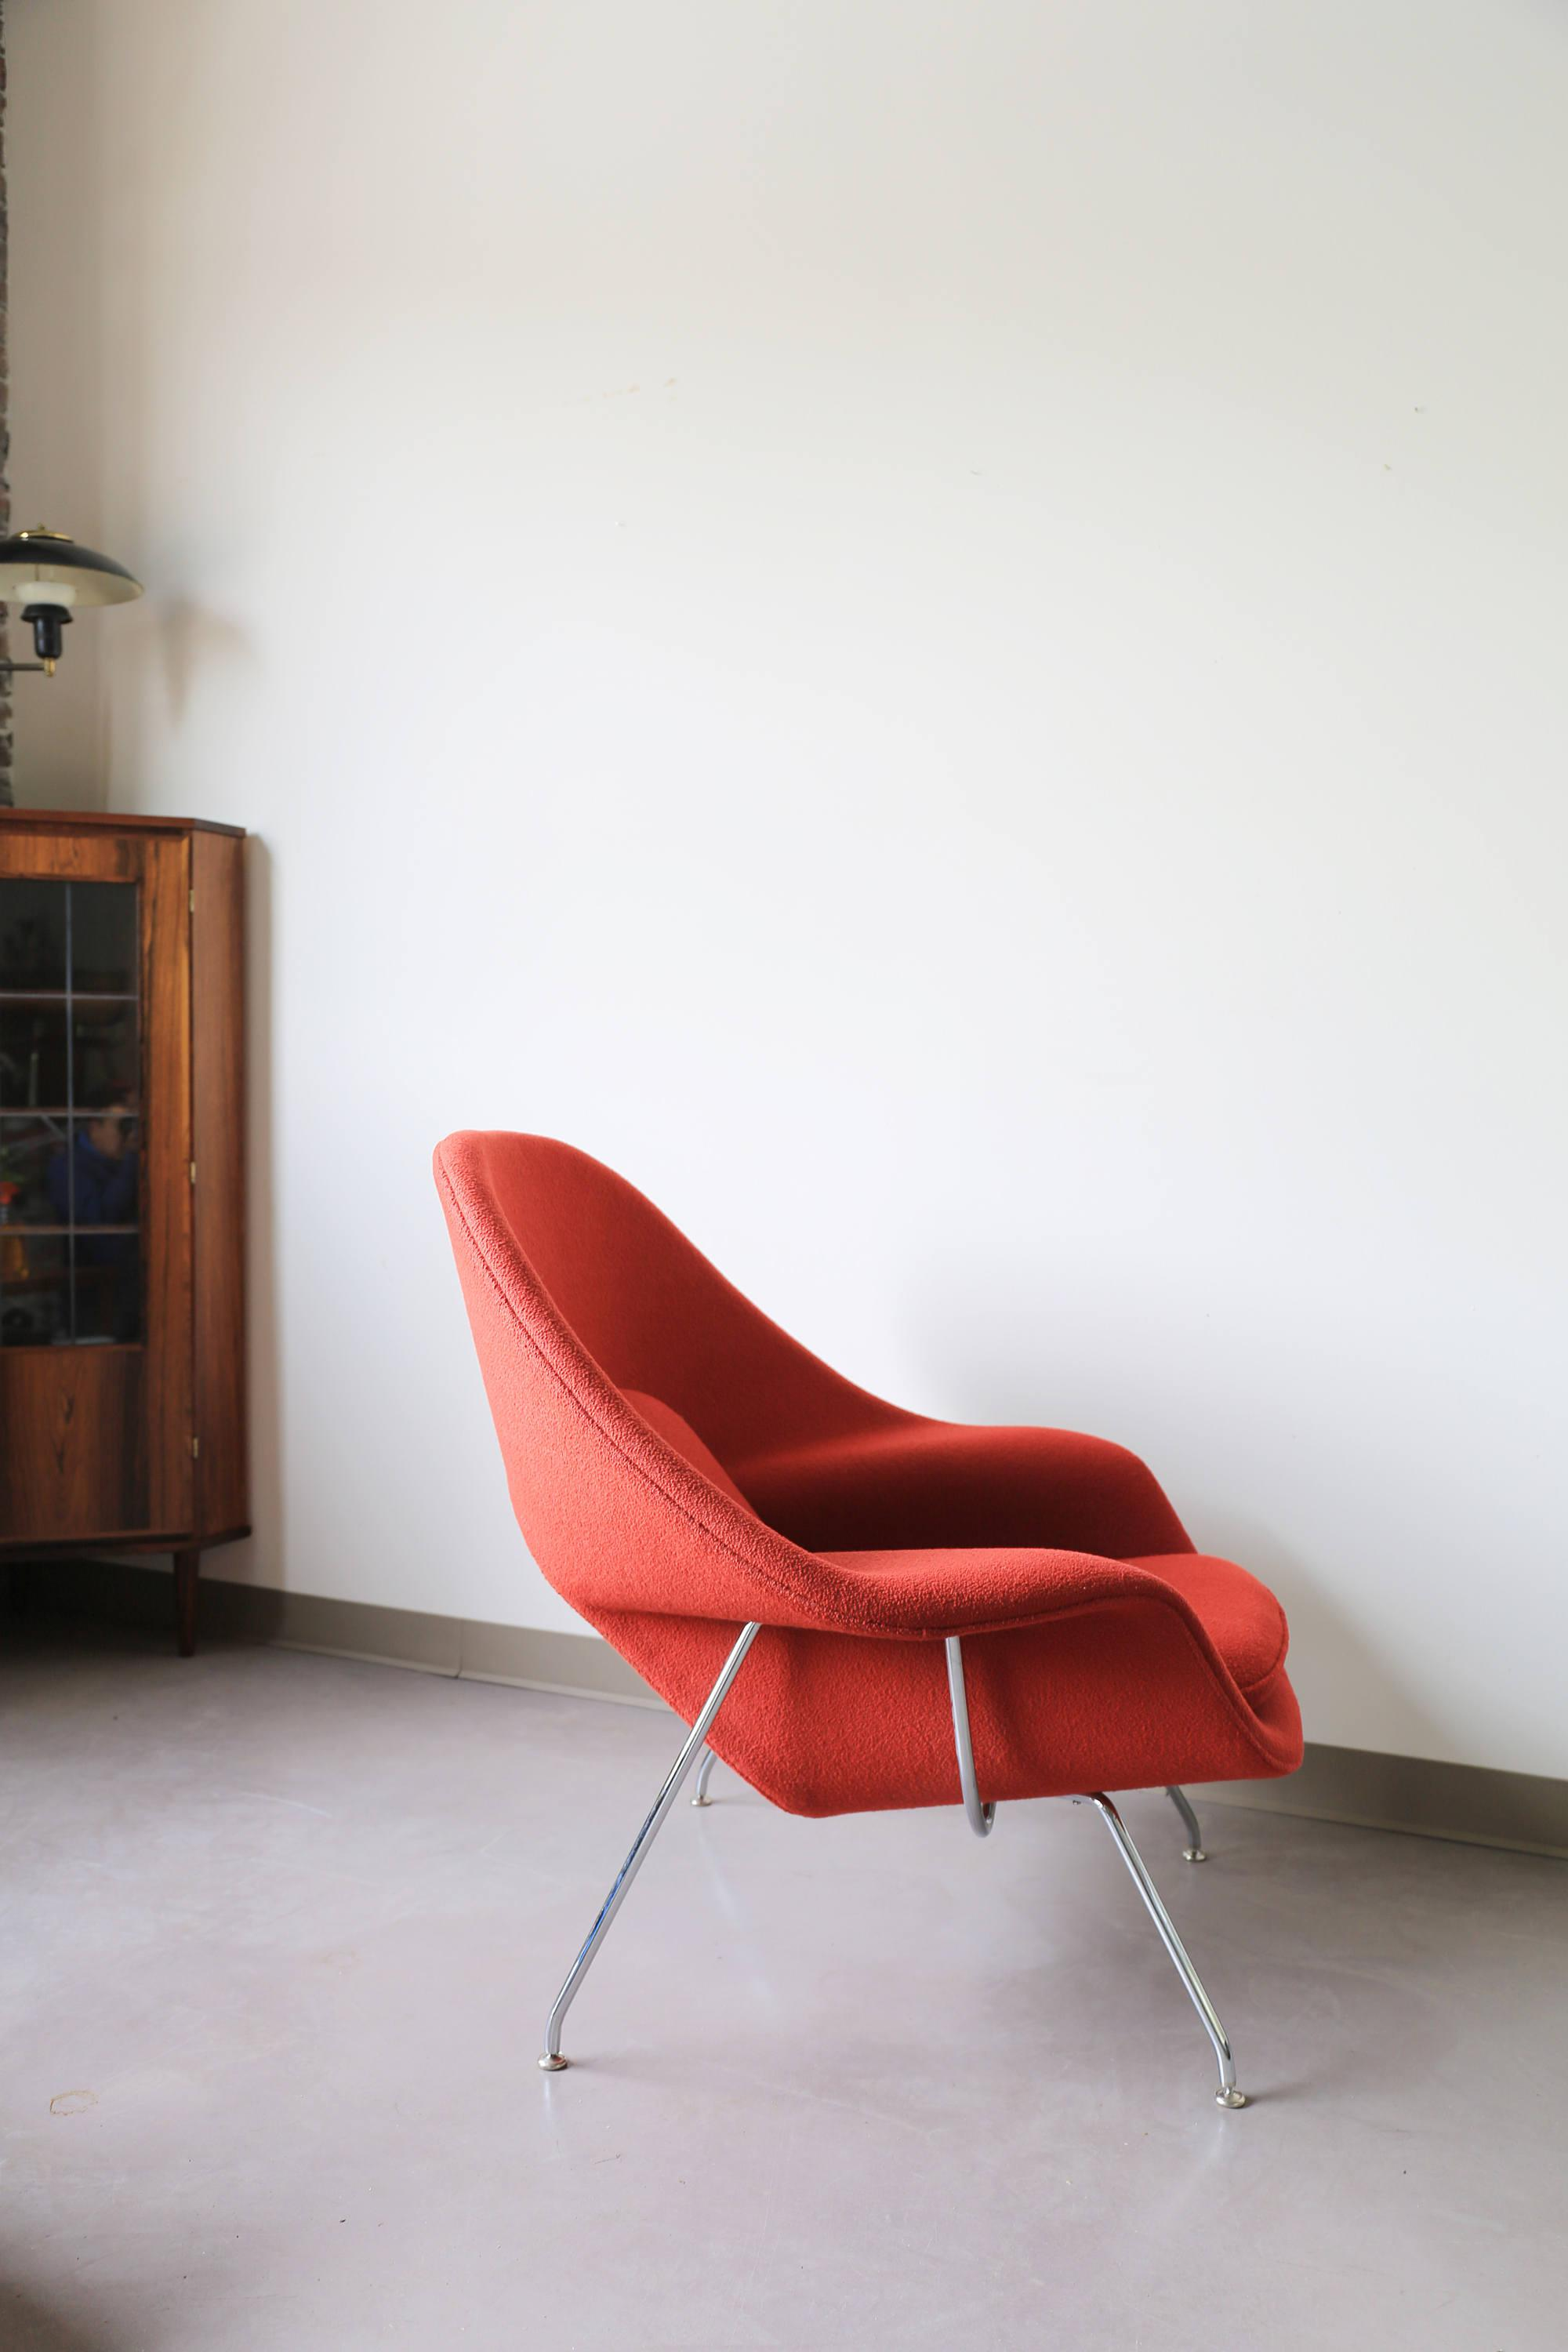 Cool Eero Saarinen For Knoll Womb Chair Image Of With Chaise